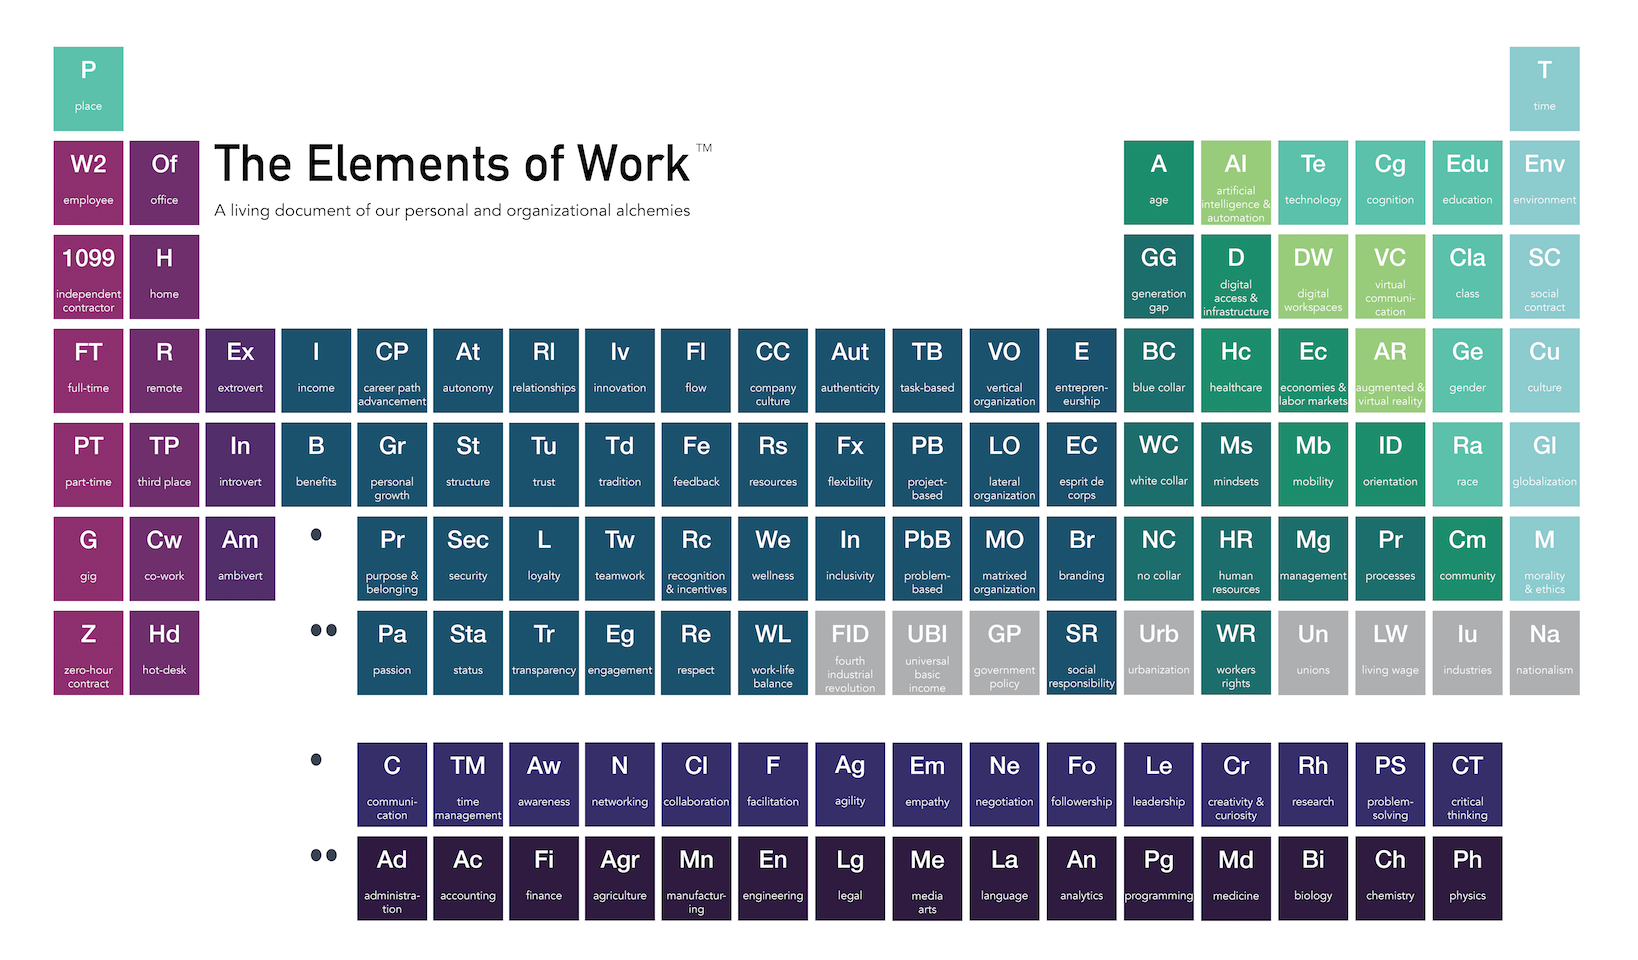 The Elements of Work™ is an online portal  for analysis and exploration of individual career journeys and organizational workflows, resources, and business processes; skill development; and culture transformation. The tool provides users access to of-the-moment education and insights on their place in the workforce, and their elemental building blocks both as individuals and in relation to other team members in the future of work.